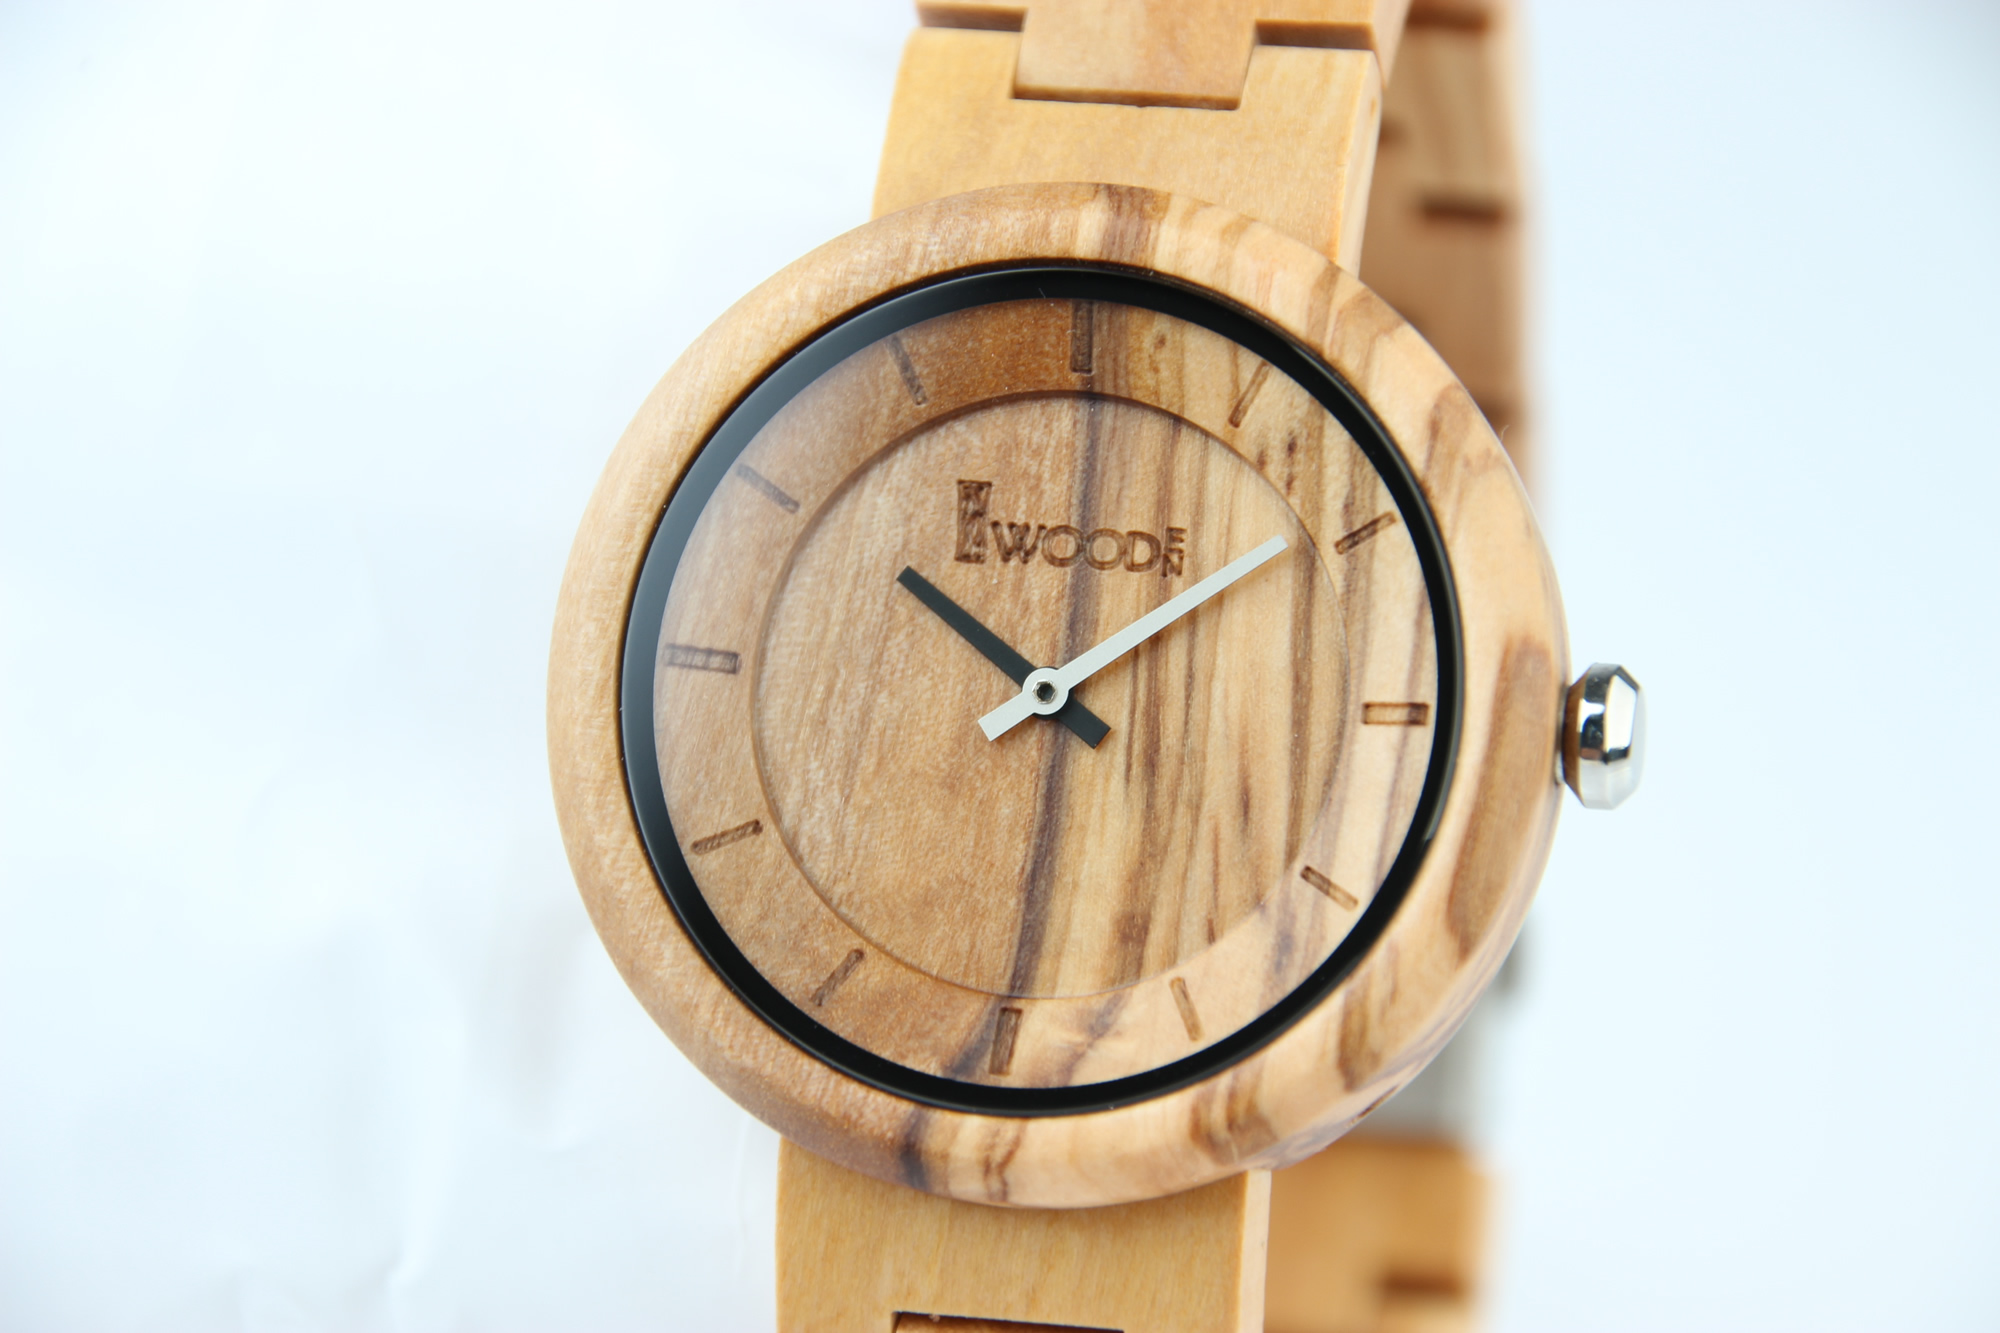 curtis the red watches watch wooden minimalist havern woodworks mens sandalwood products wood